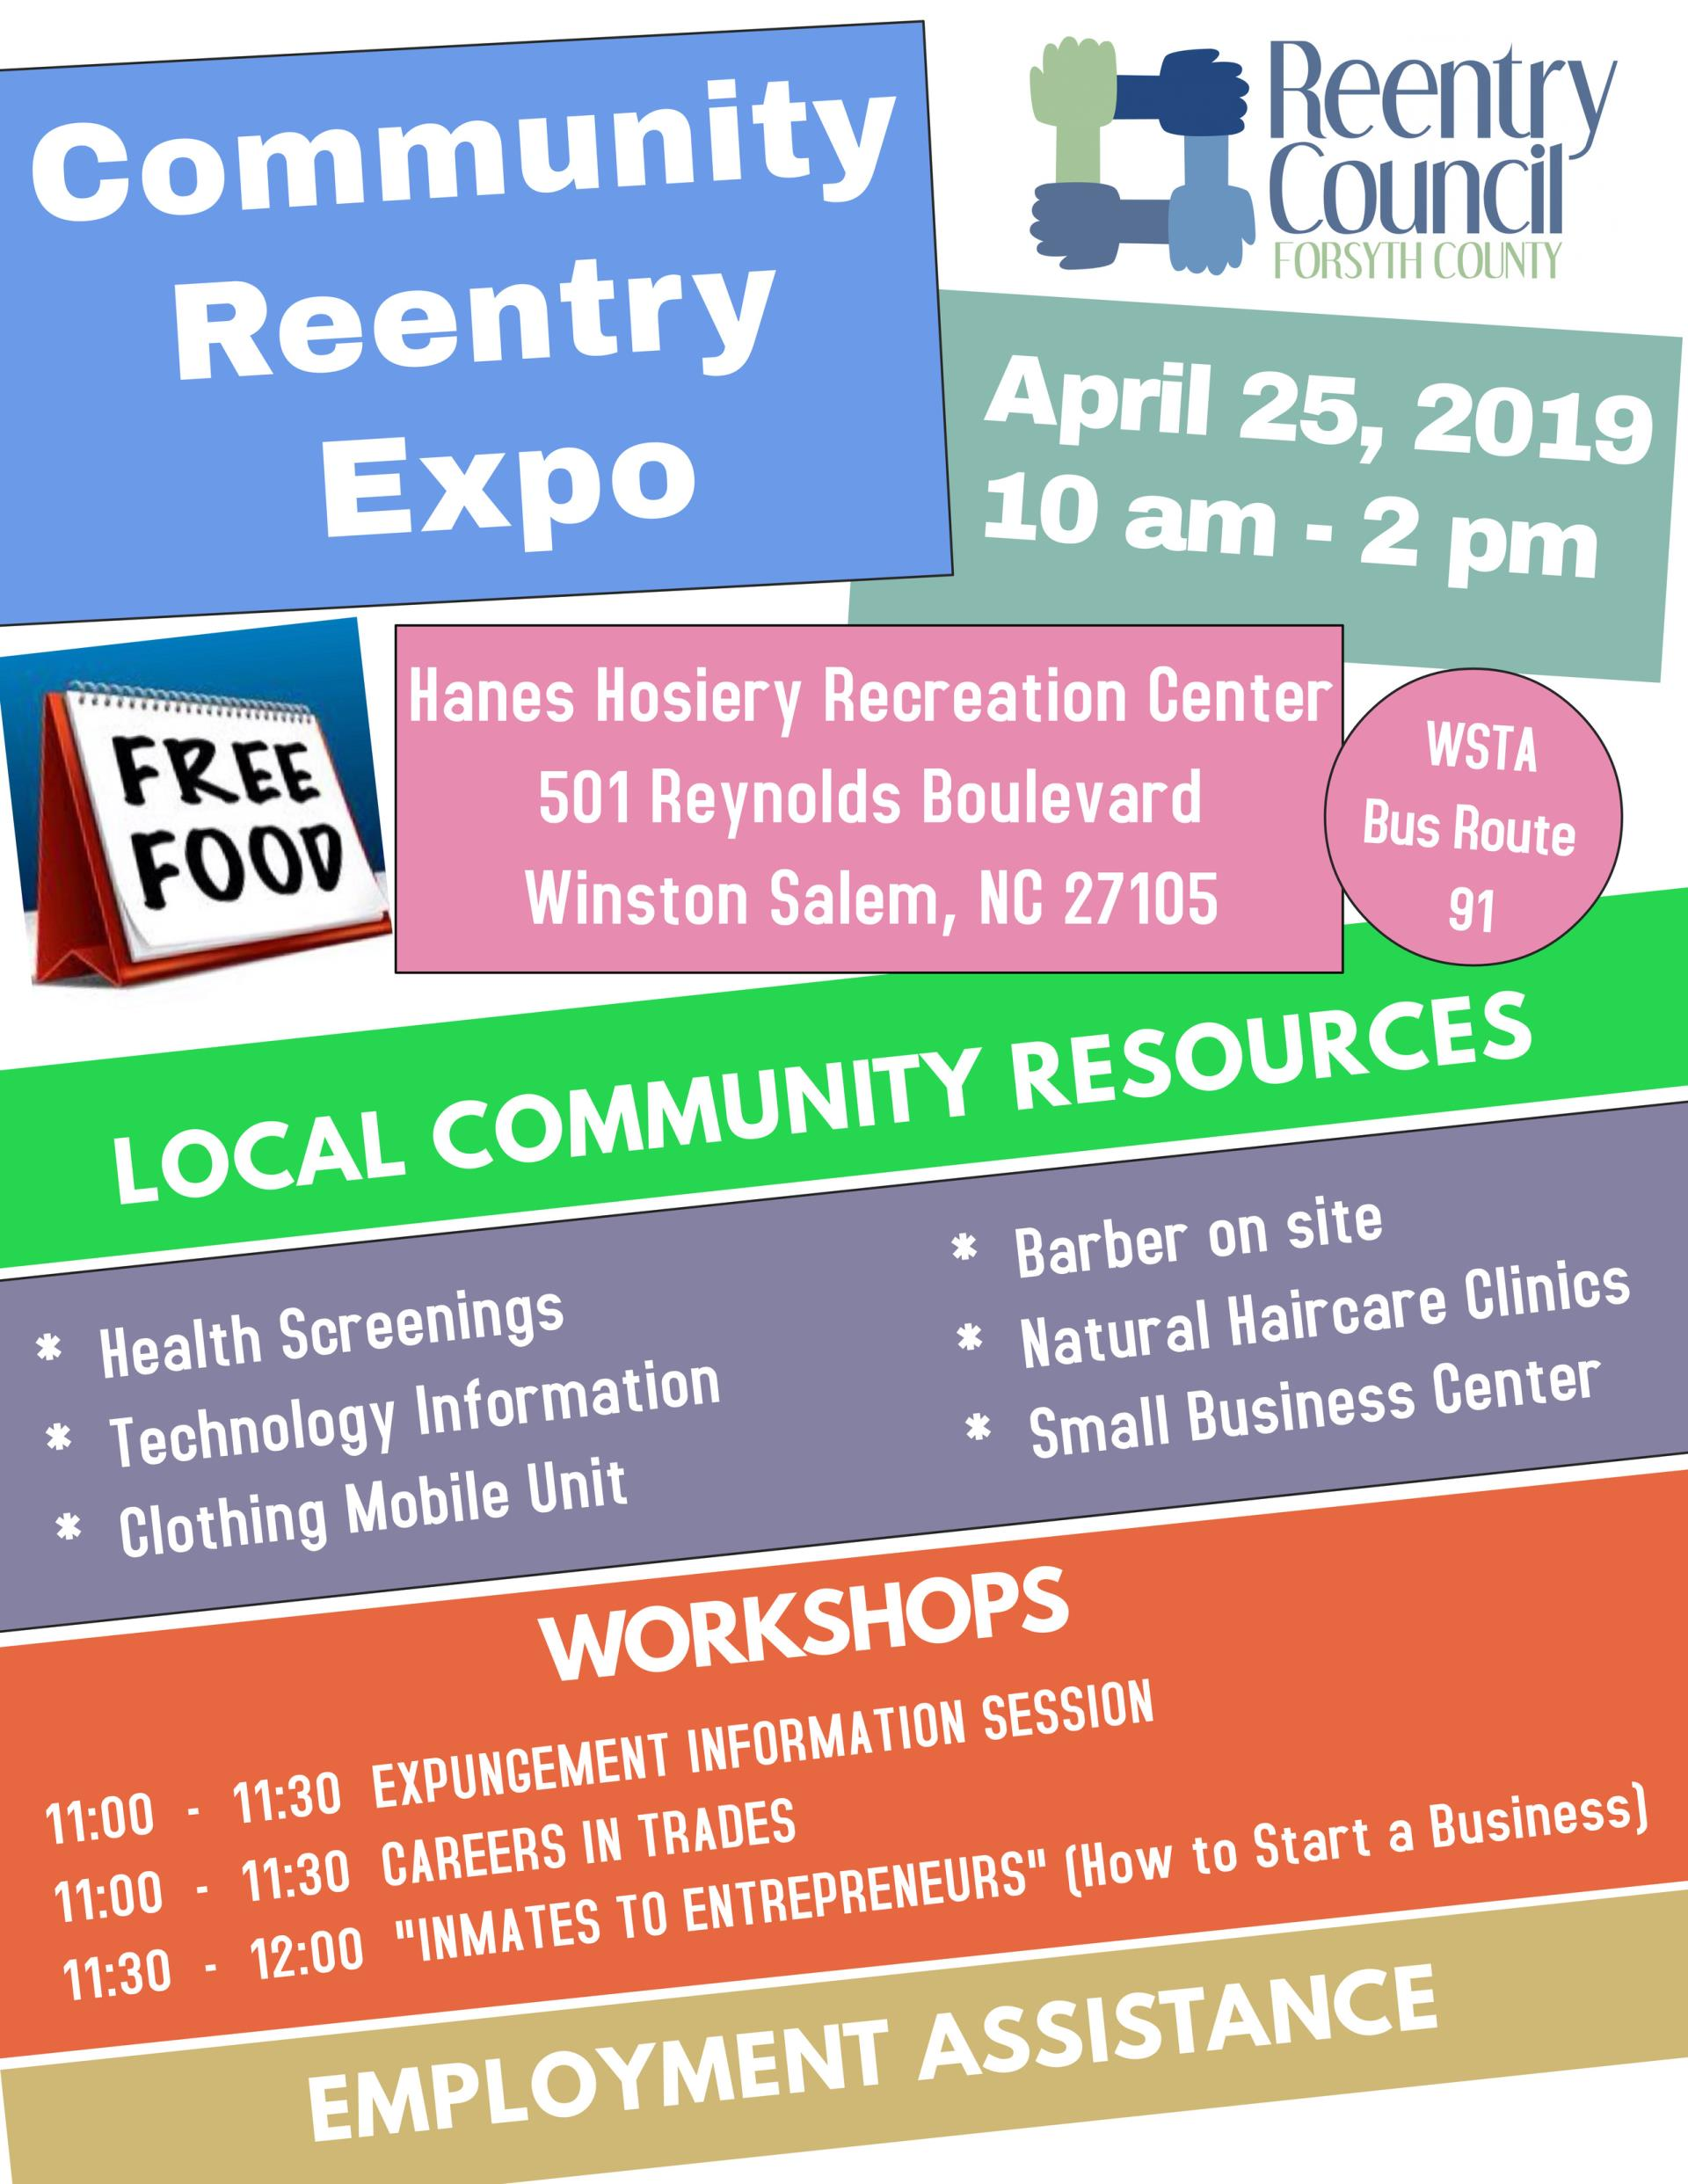 Community Reentry Expo flyer april 25, 2019